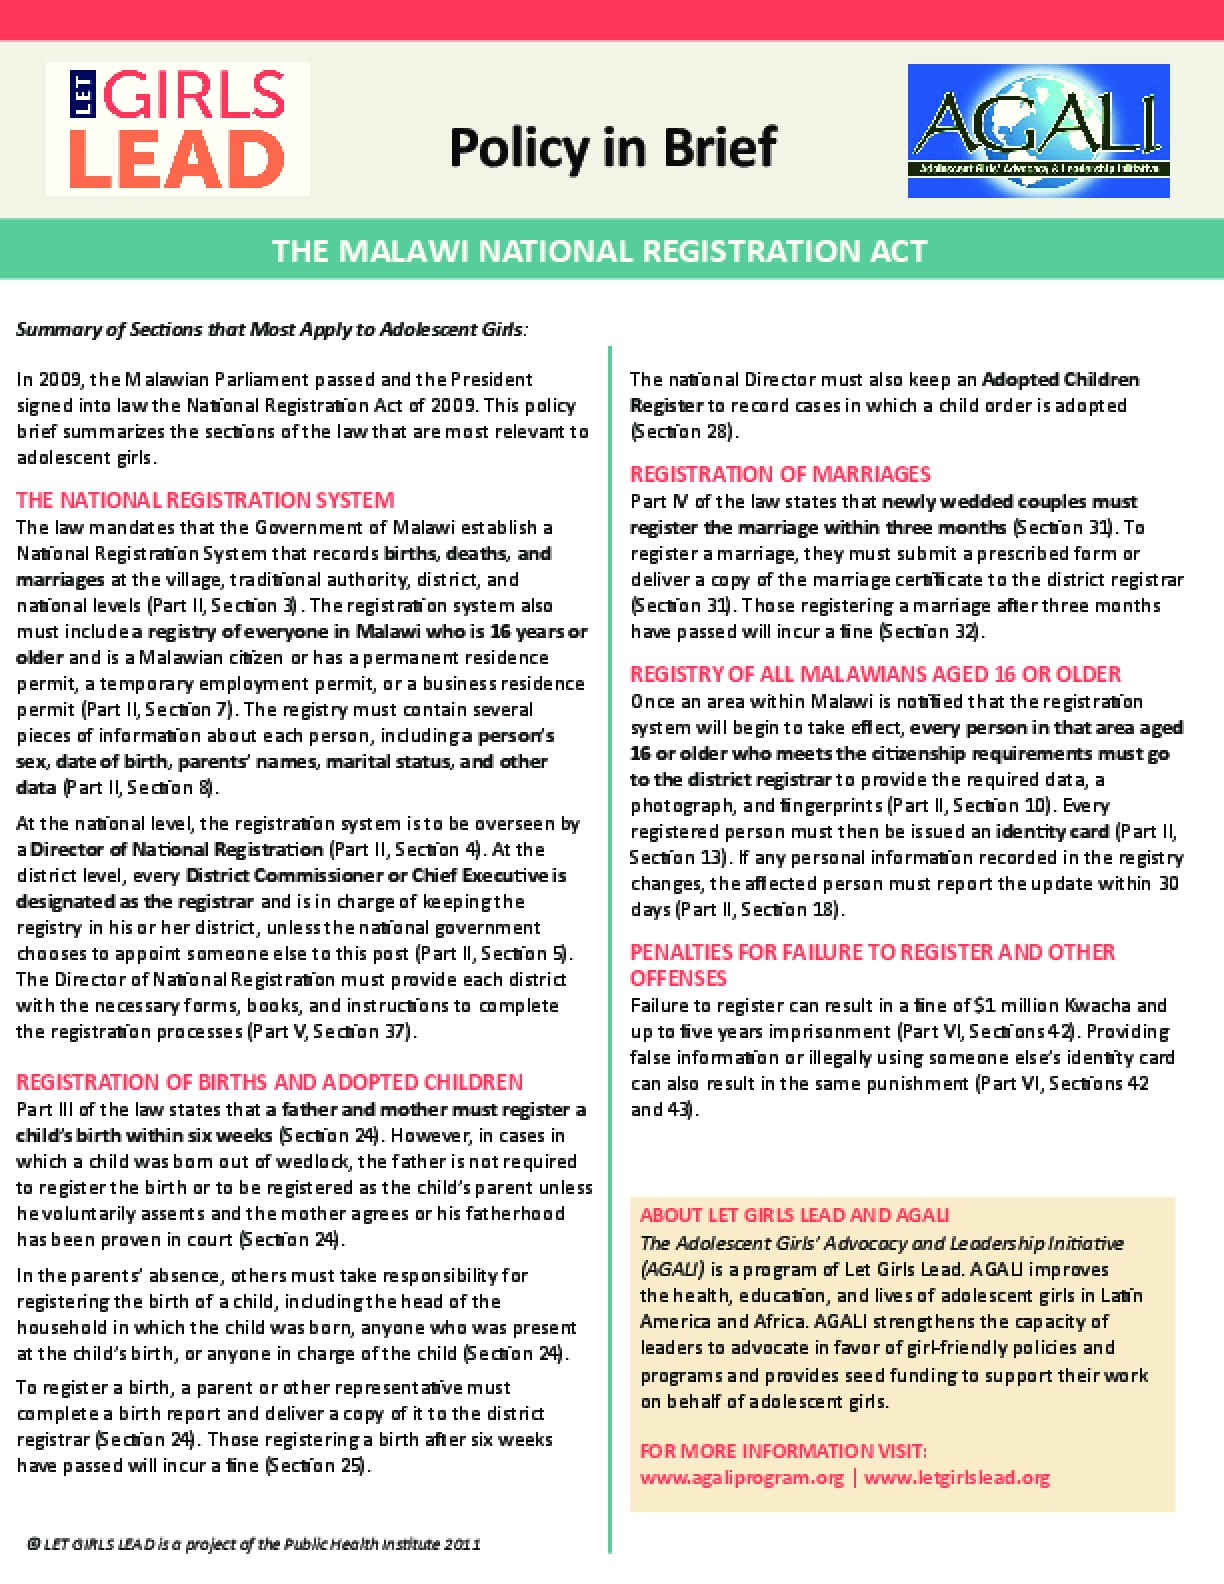 The Malawi National Registration Act